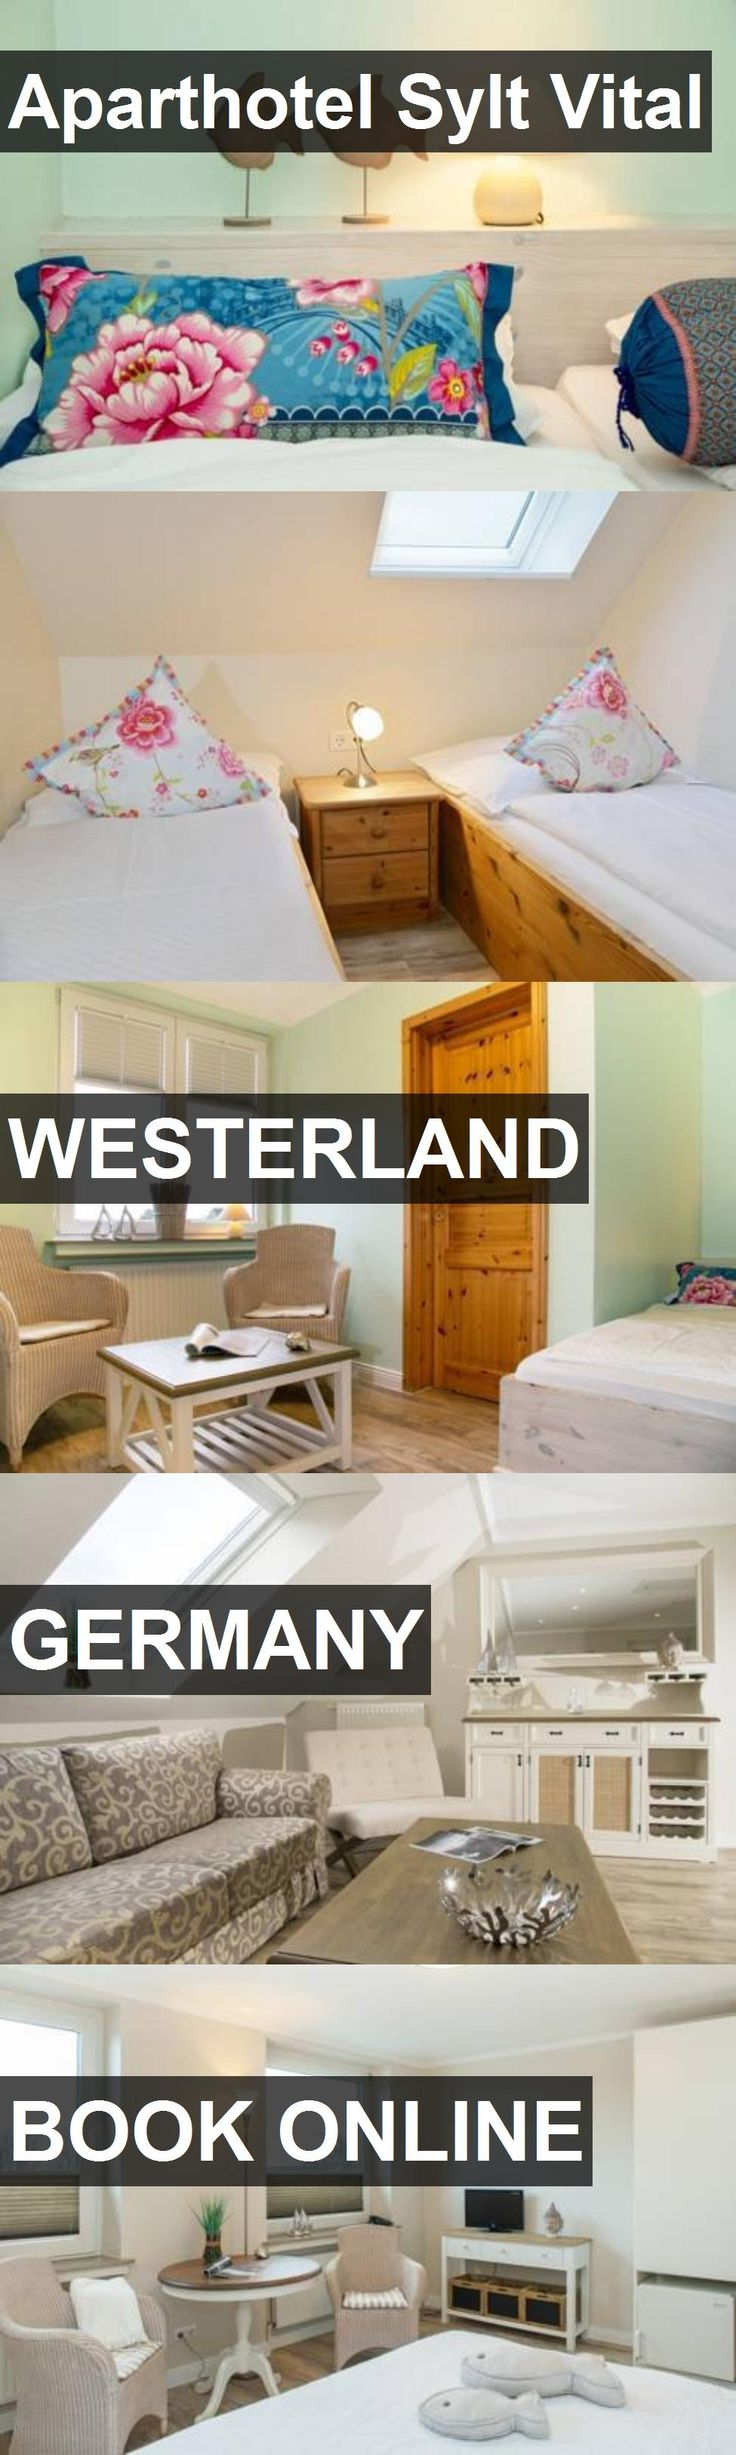 Aparthotel Sylt Vital in Westerland, Germany. For more information, photos, reviews and best prices please follow the link. #Germany #Westerland #travel #vacation #hotel